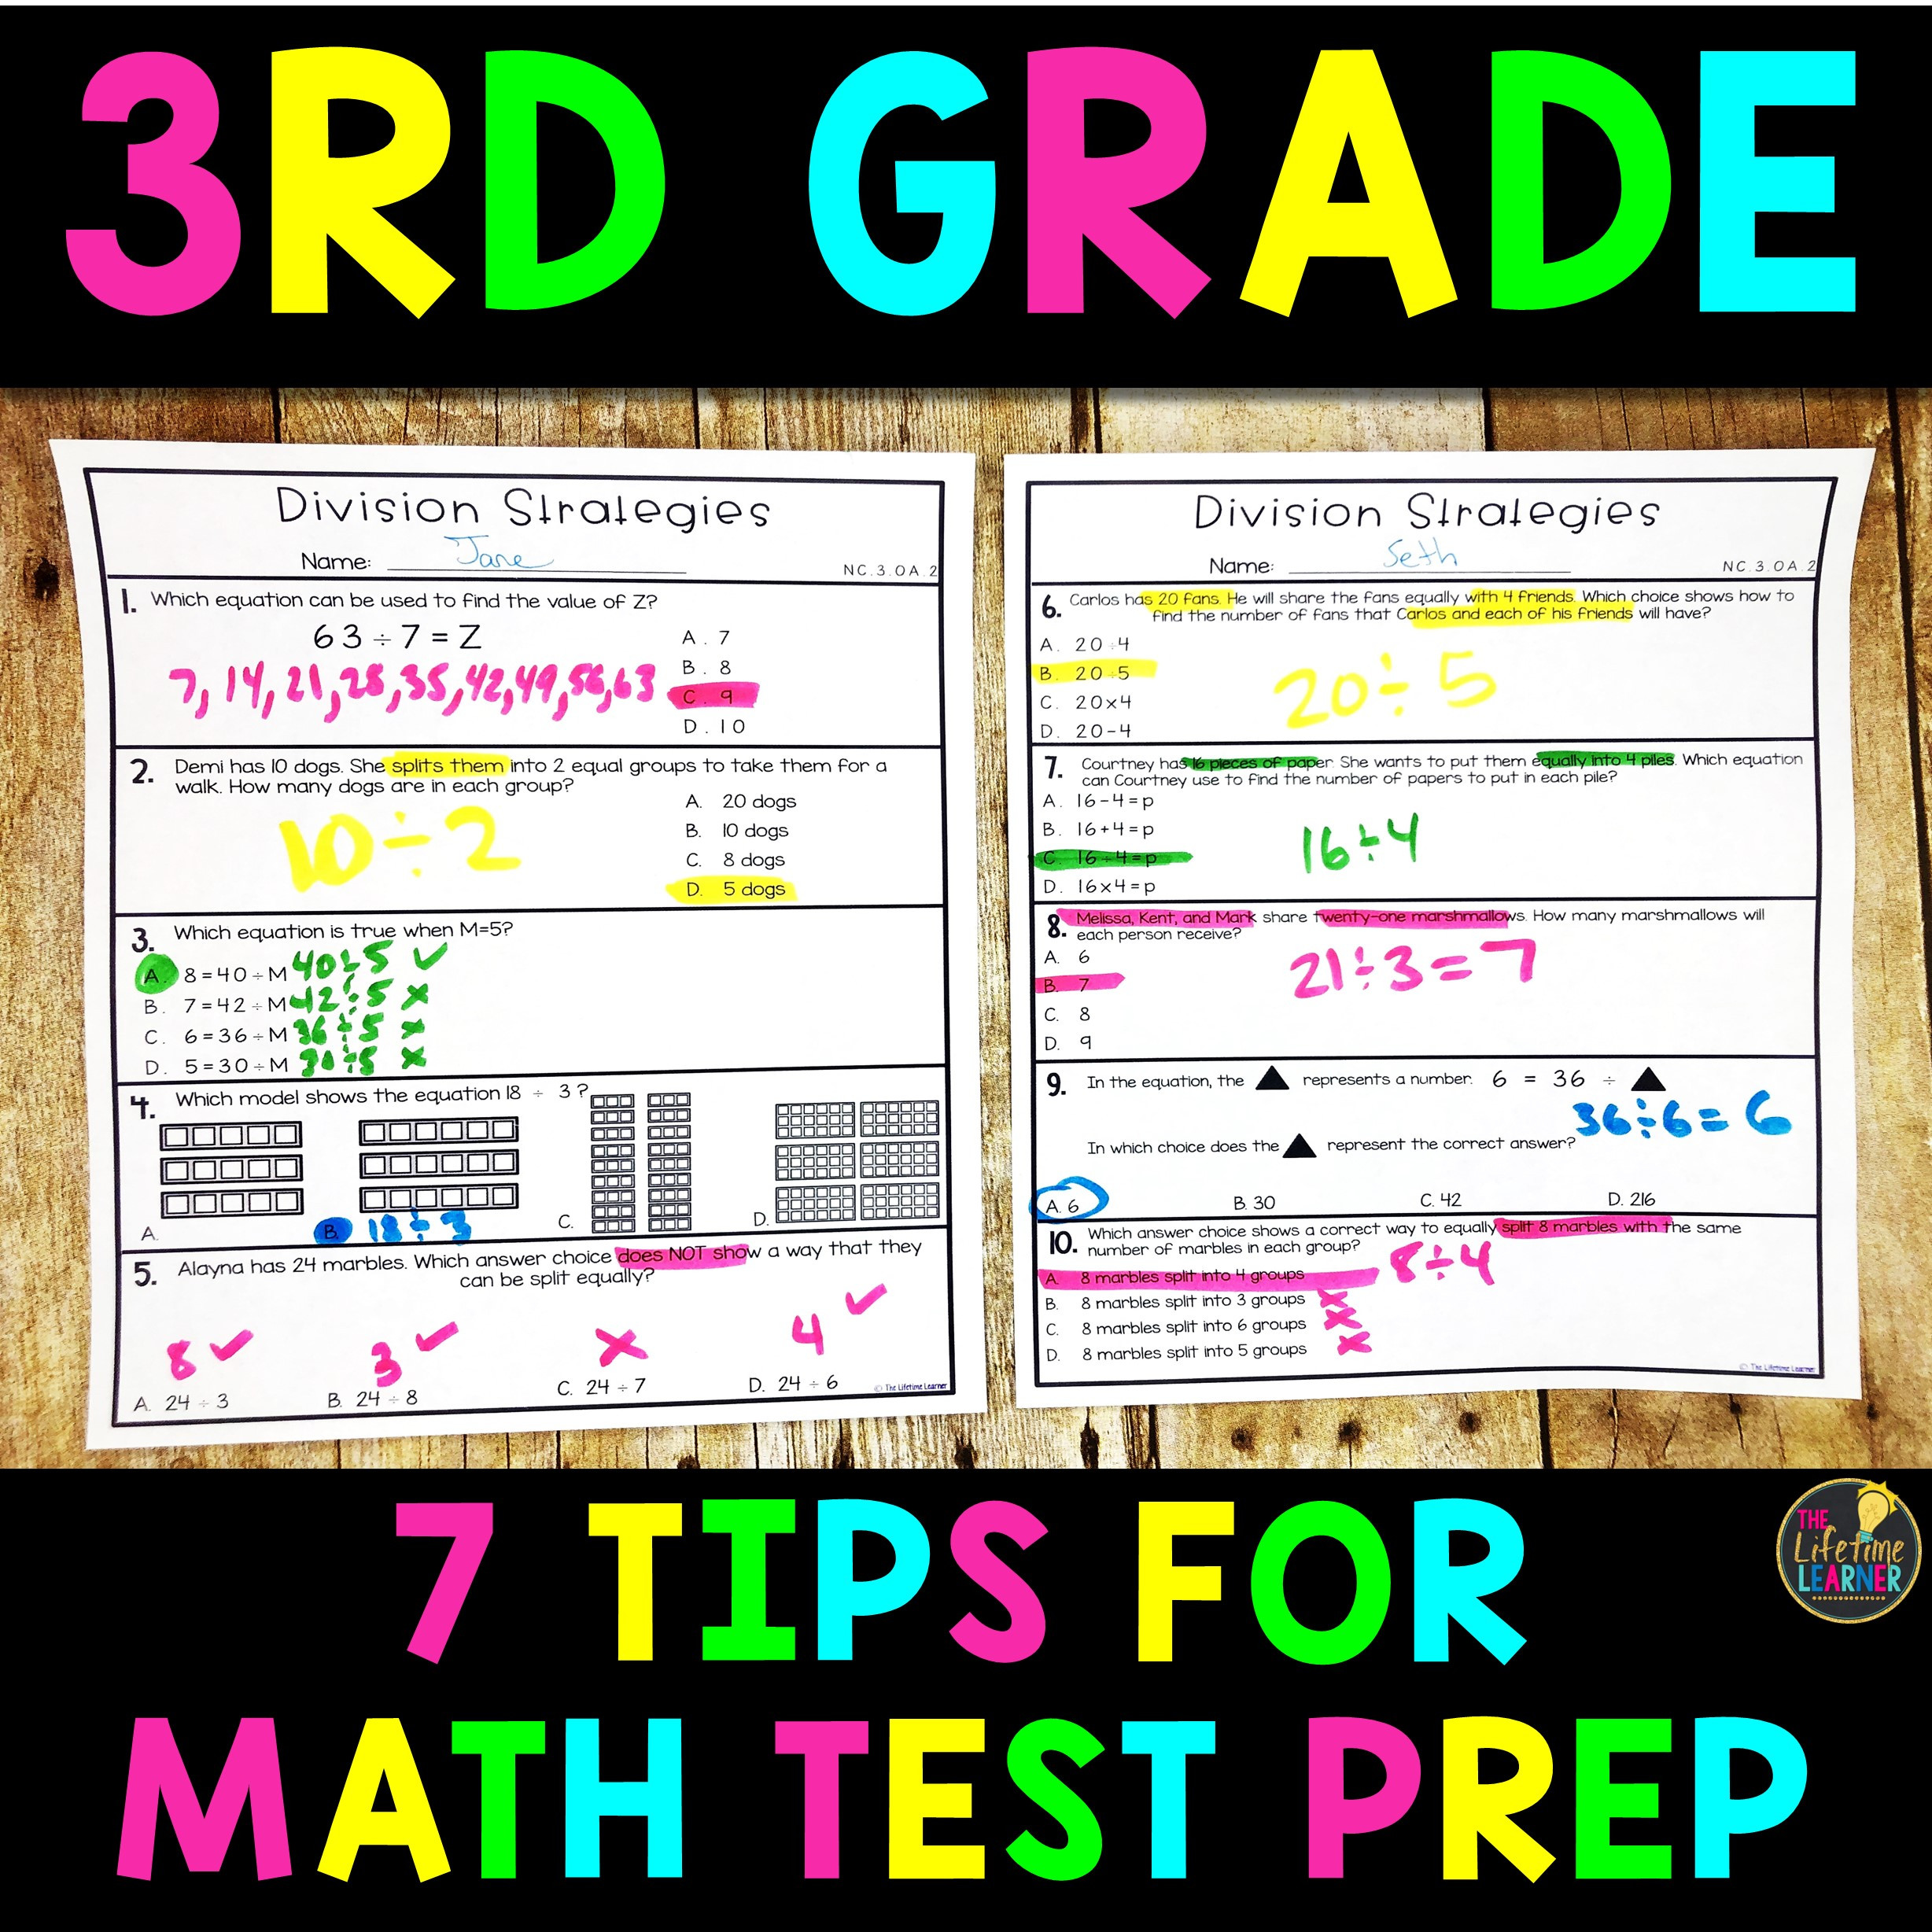 3rd Grade Test Prep Worksheets 7 Tips for 3rd Grade Math Test Prep the Lifetime Learner